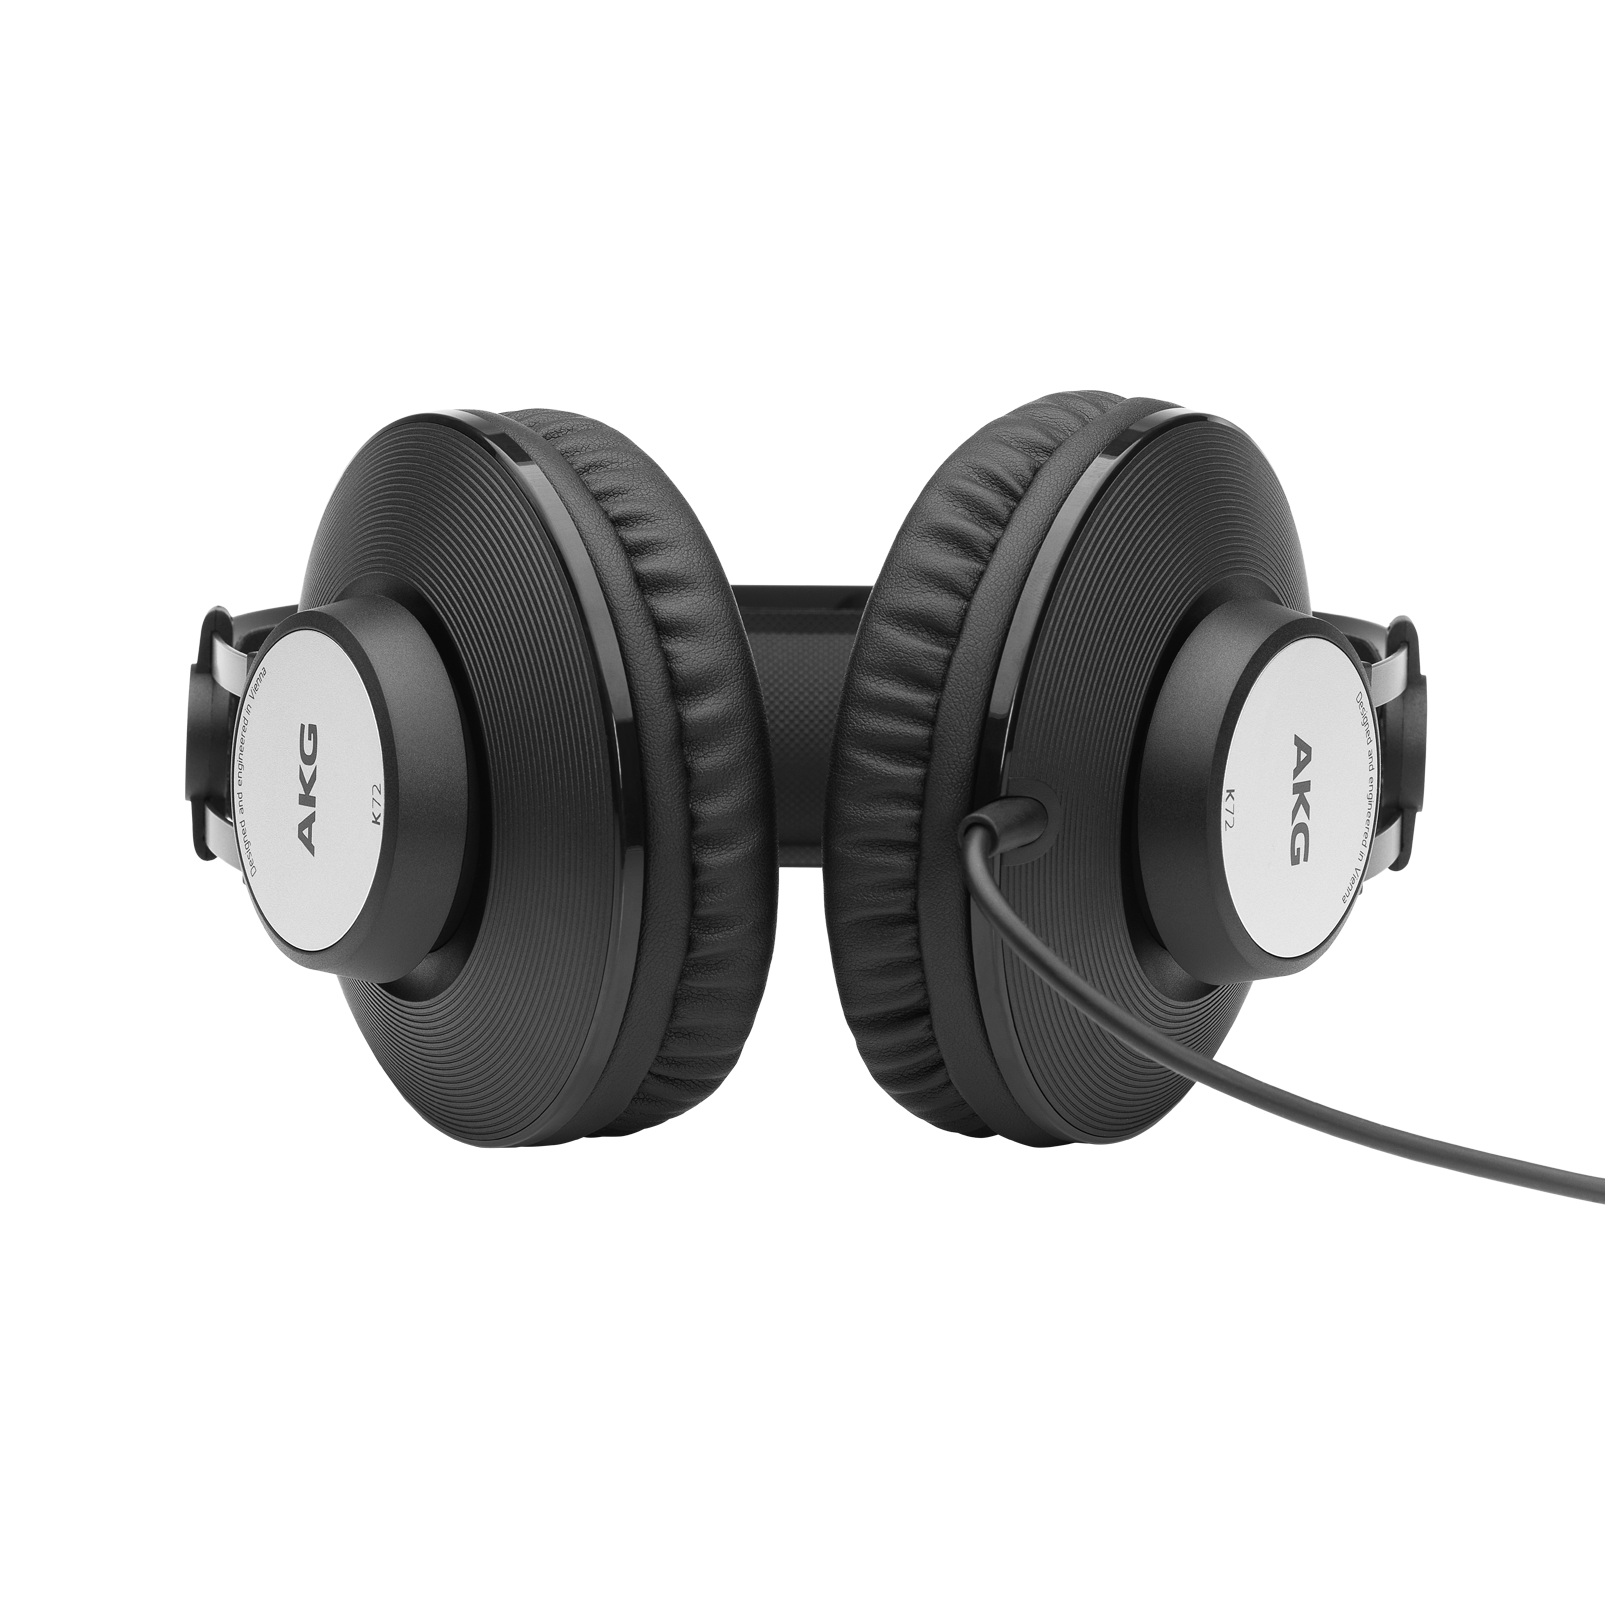 K72 - Black - Closed-back studio headphones - Detailshot 1